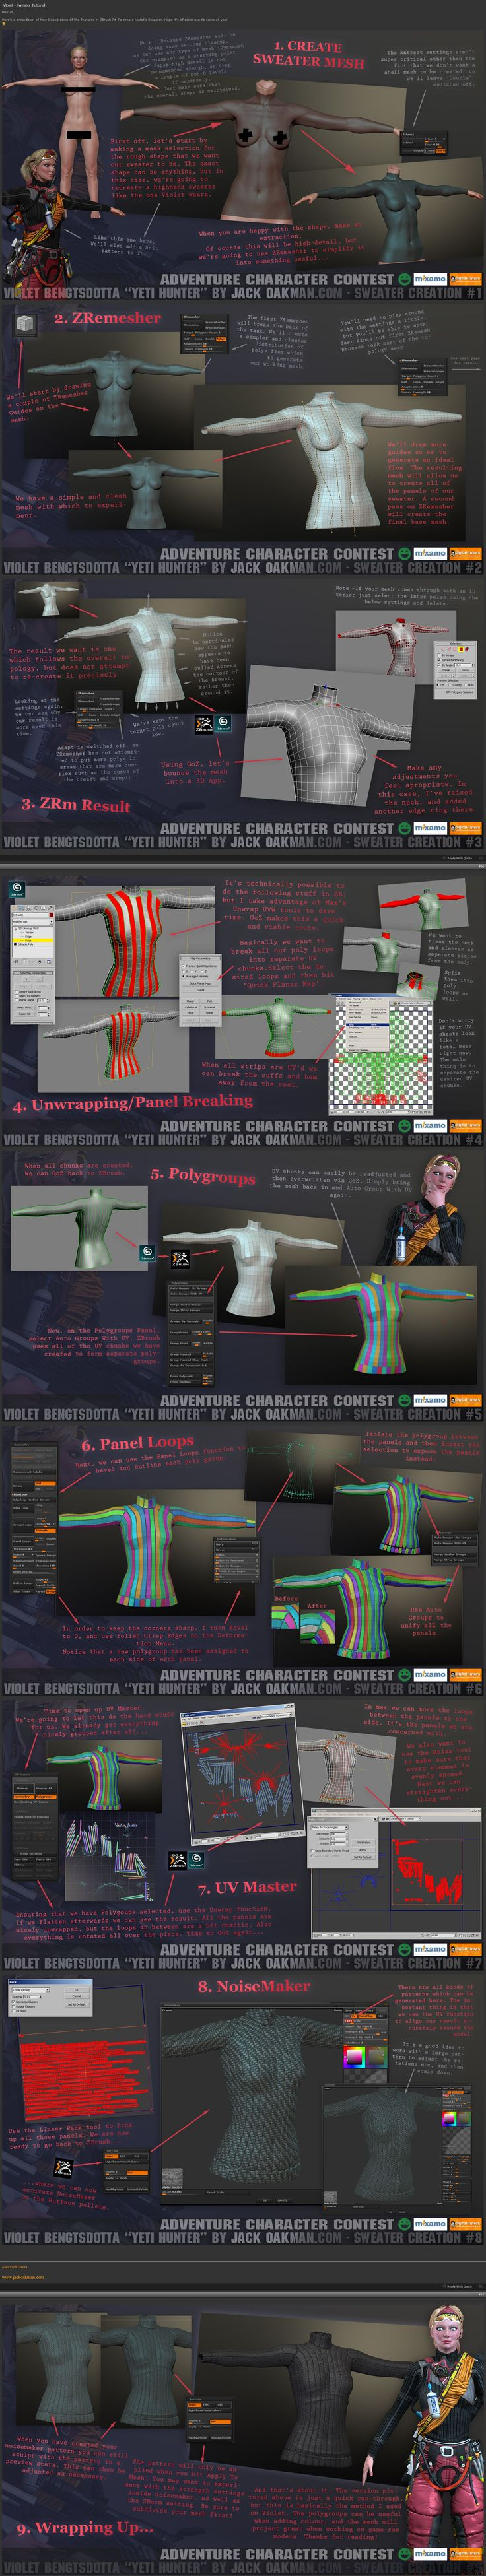 Sweater in Zbrush 4R6 #3d #sculpting #tutorials